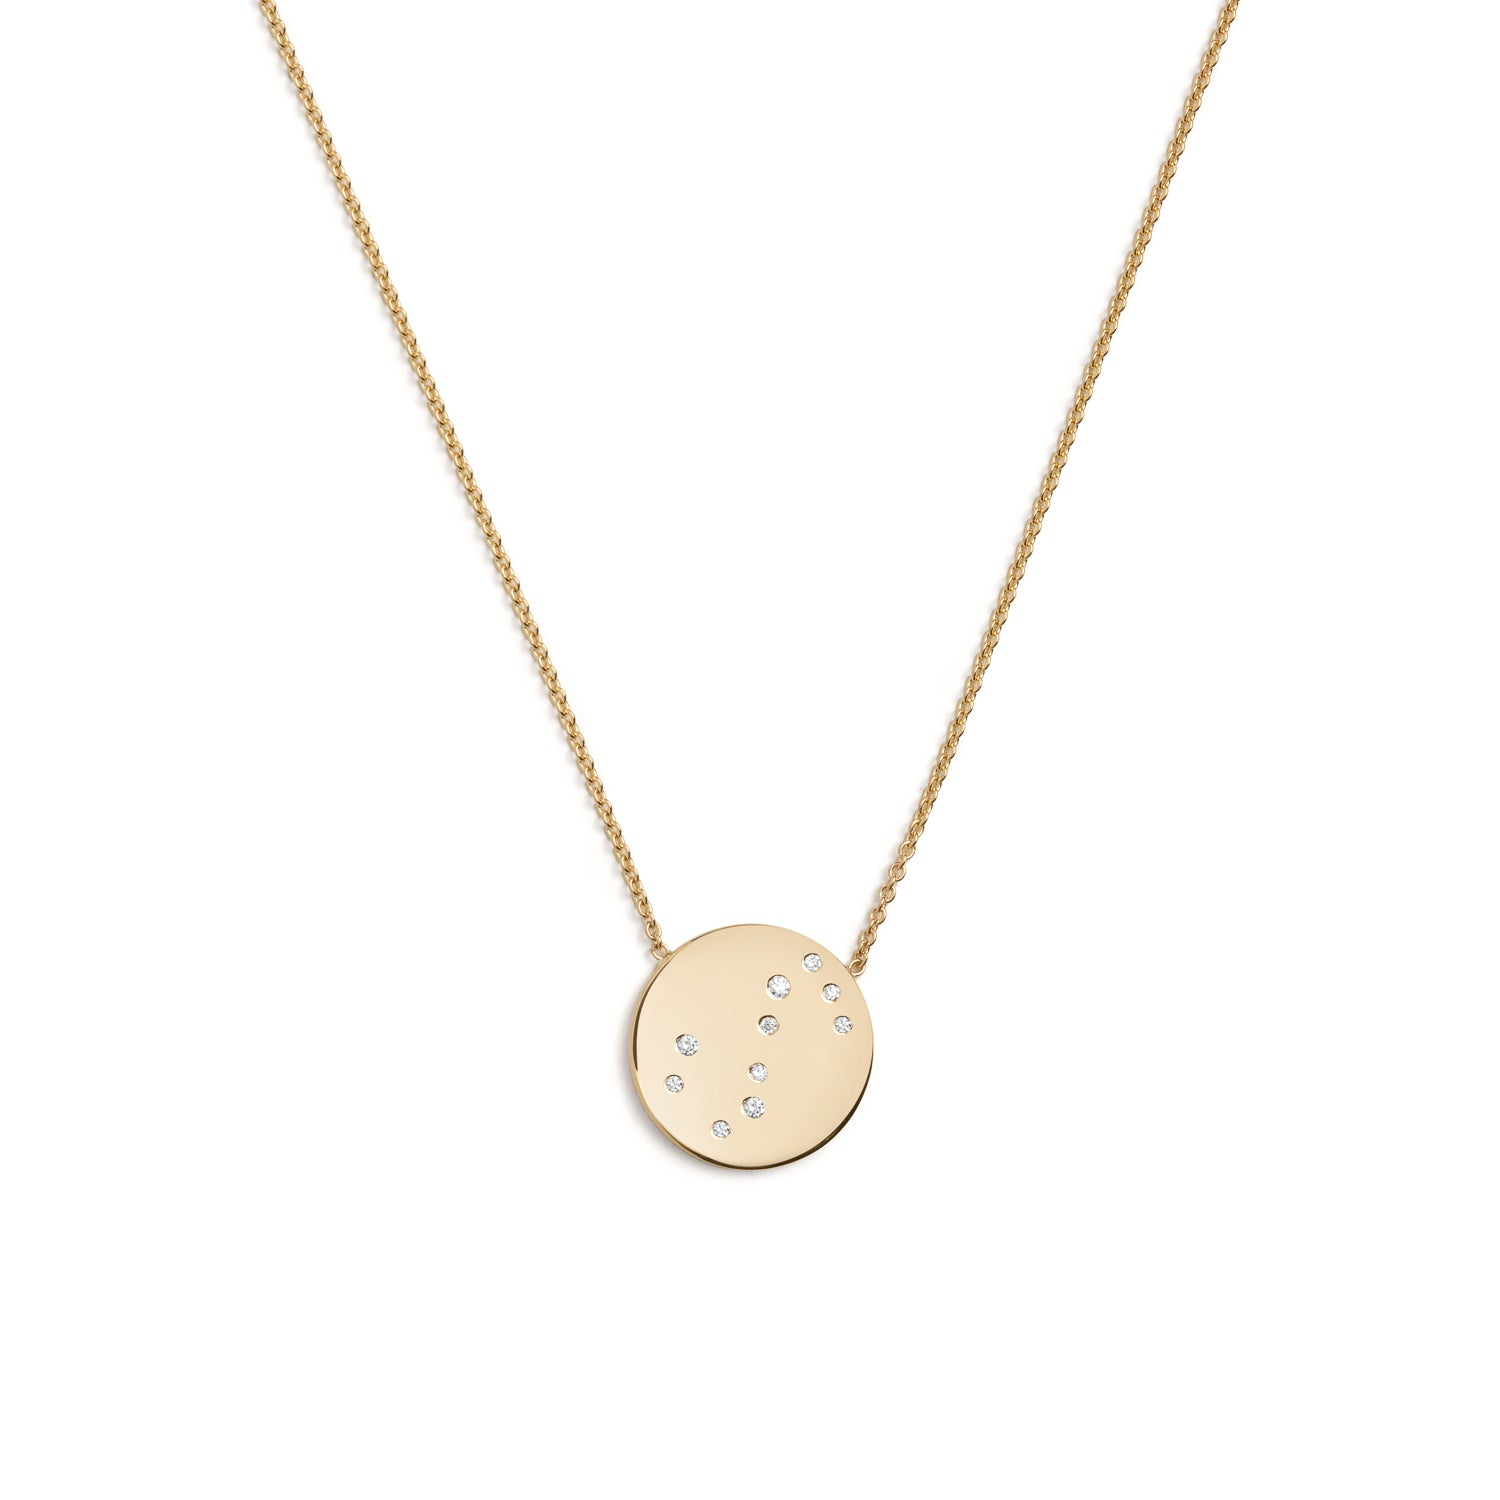 Scorpio Star Sign Necklace in Gold